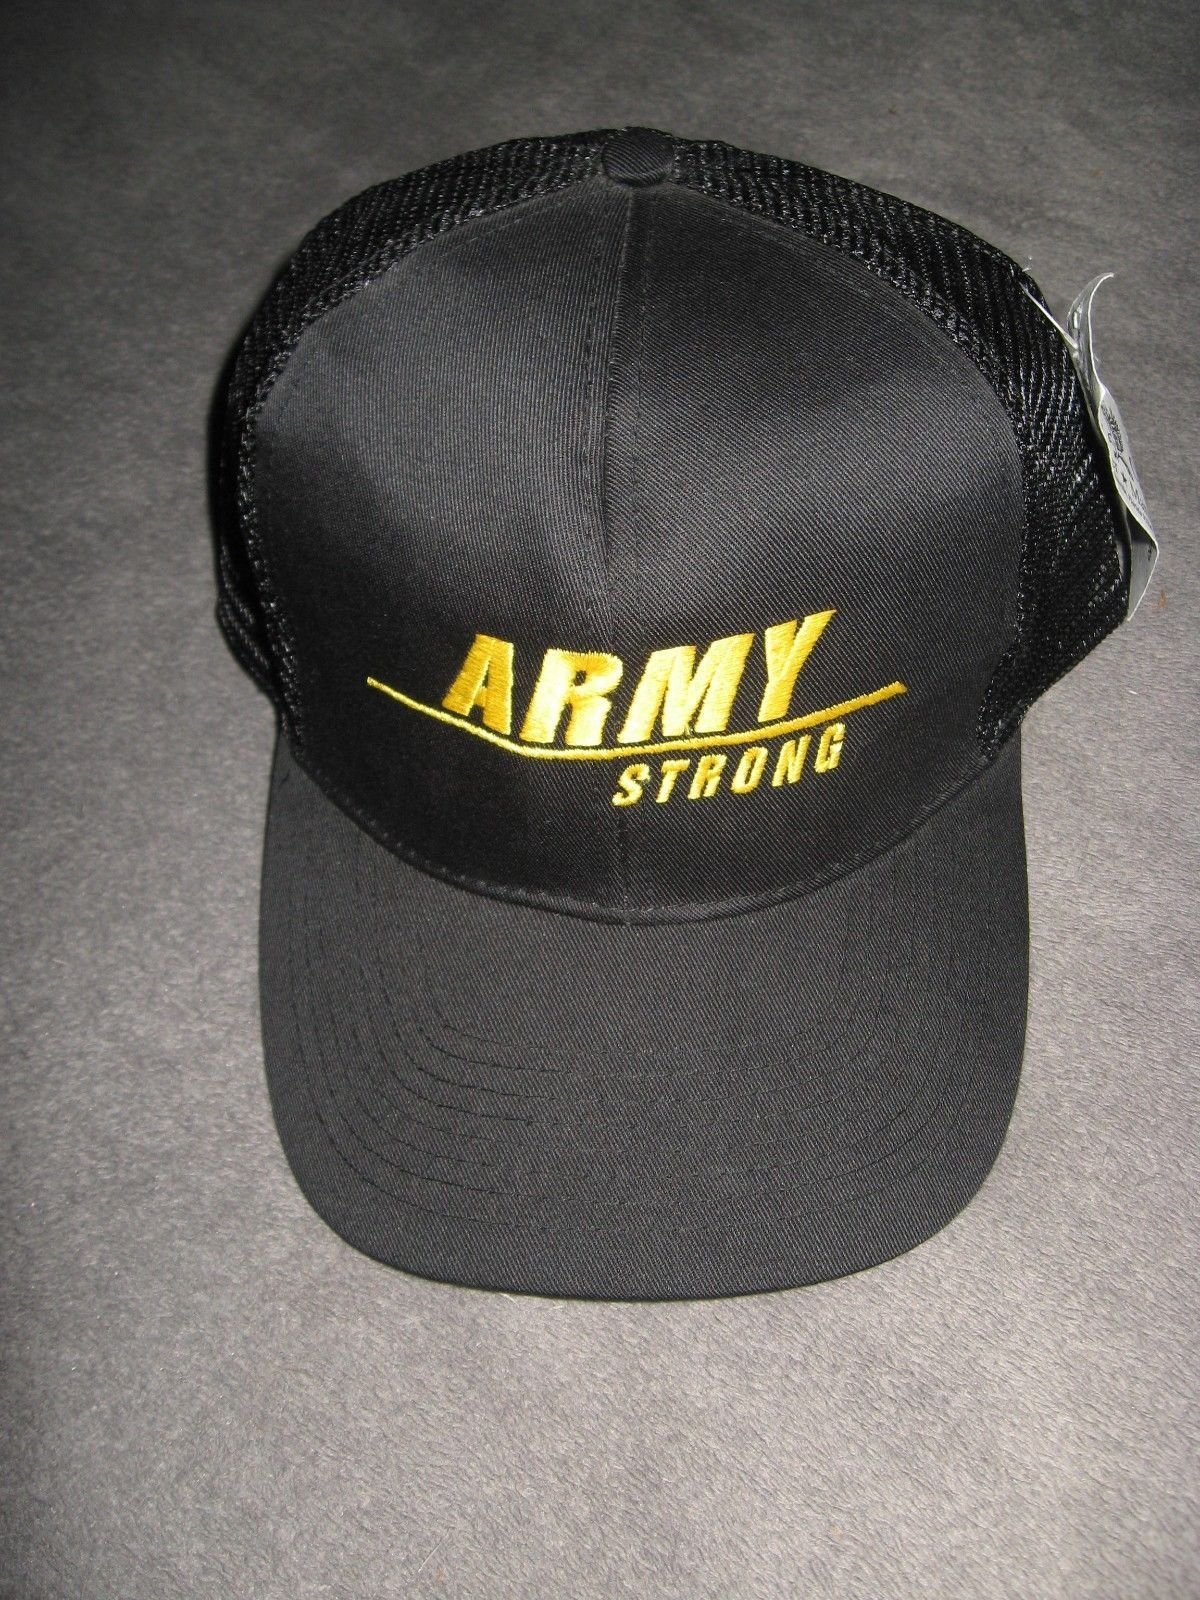 USA United States Army Strong Military Black and similar items 651fc1655a27